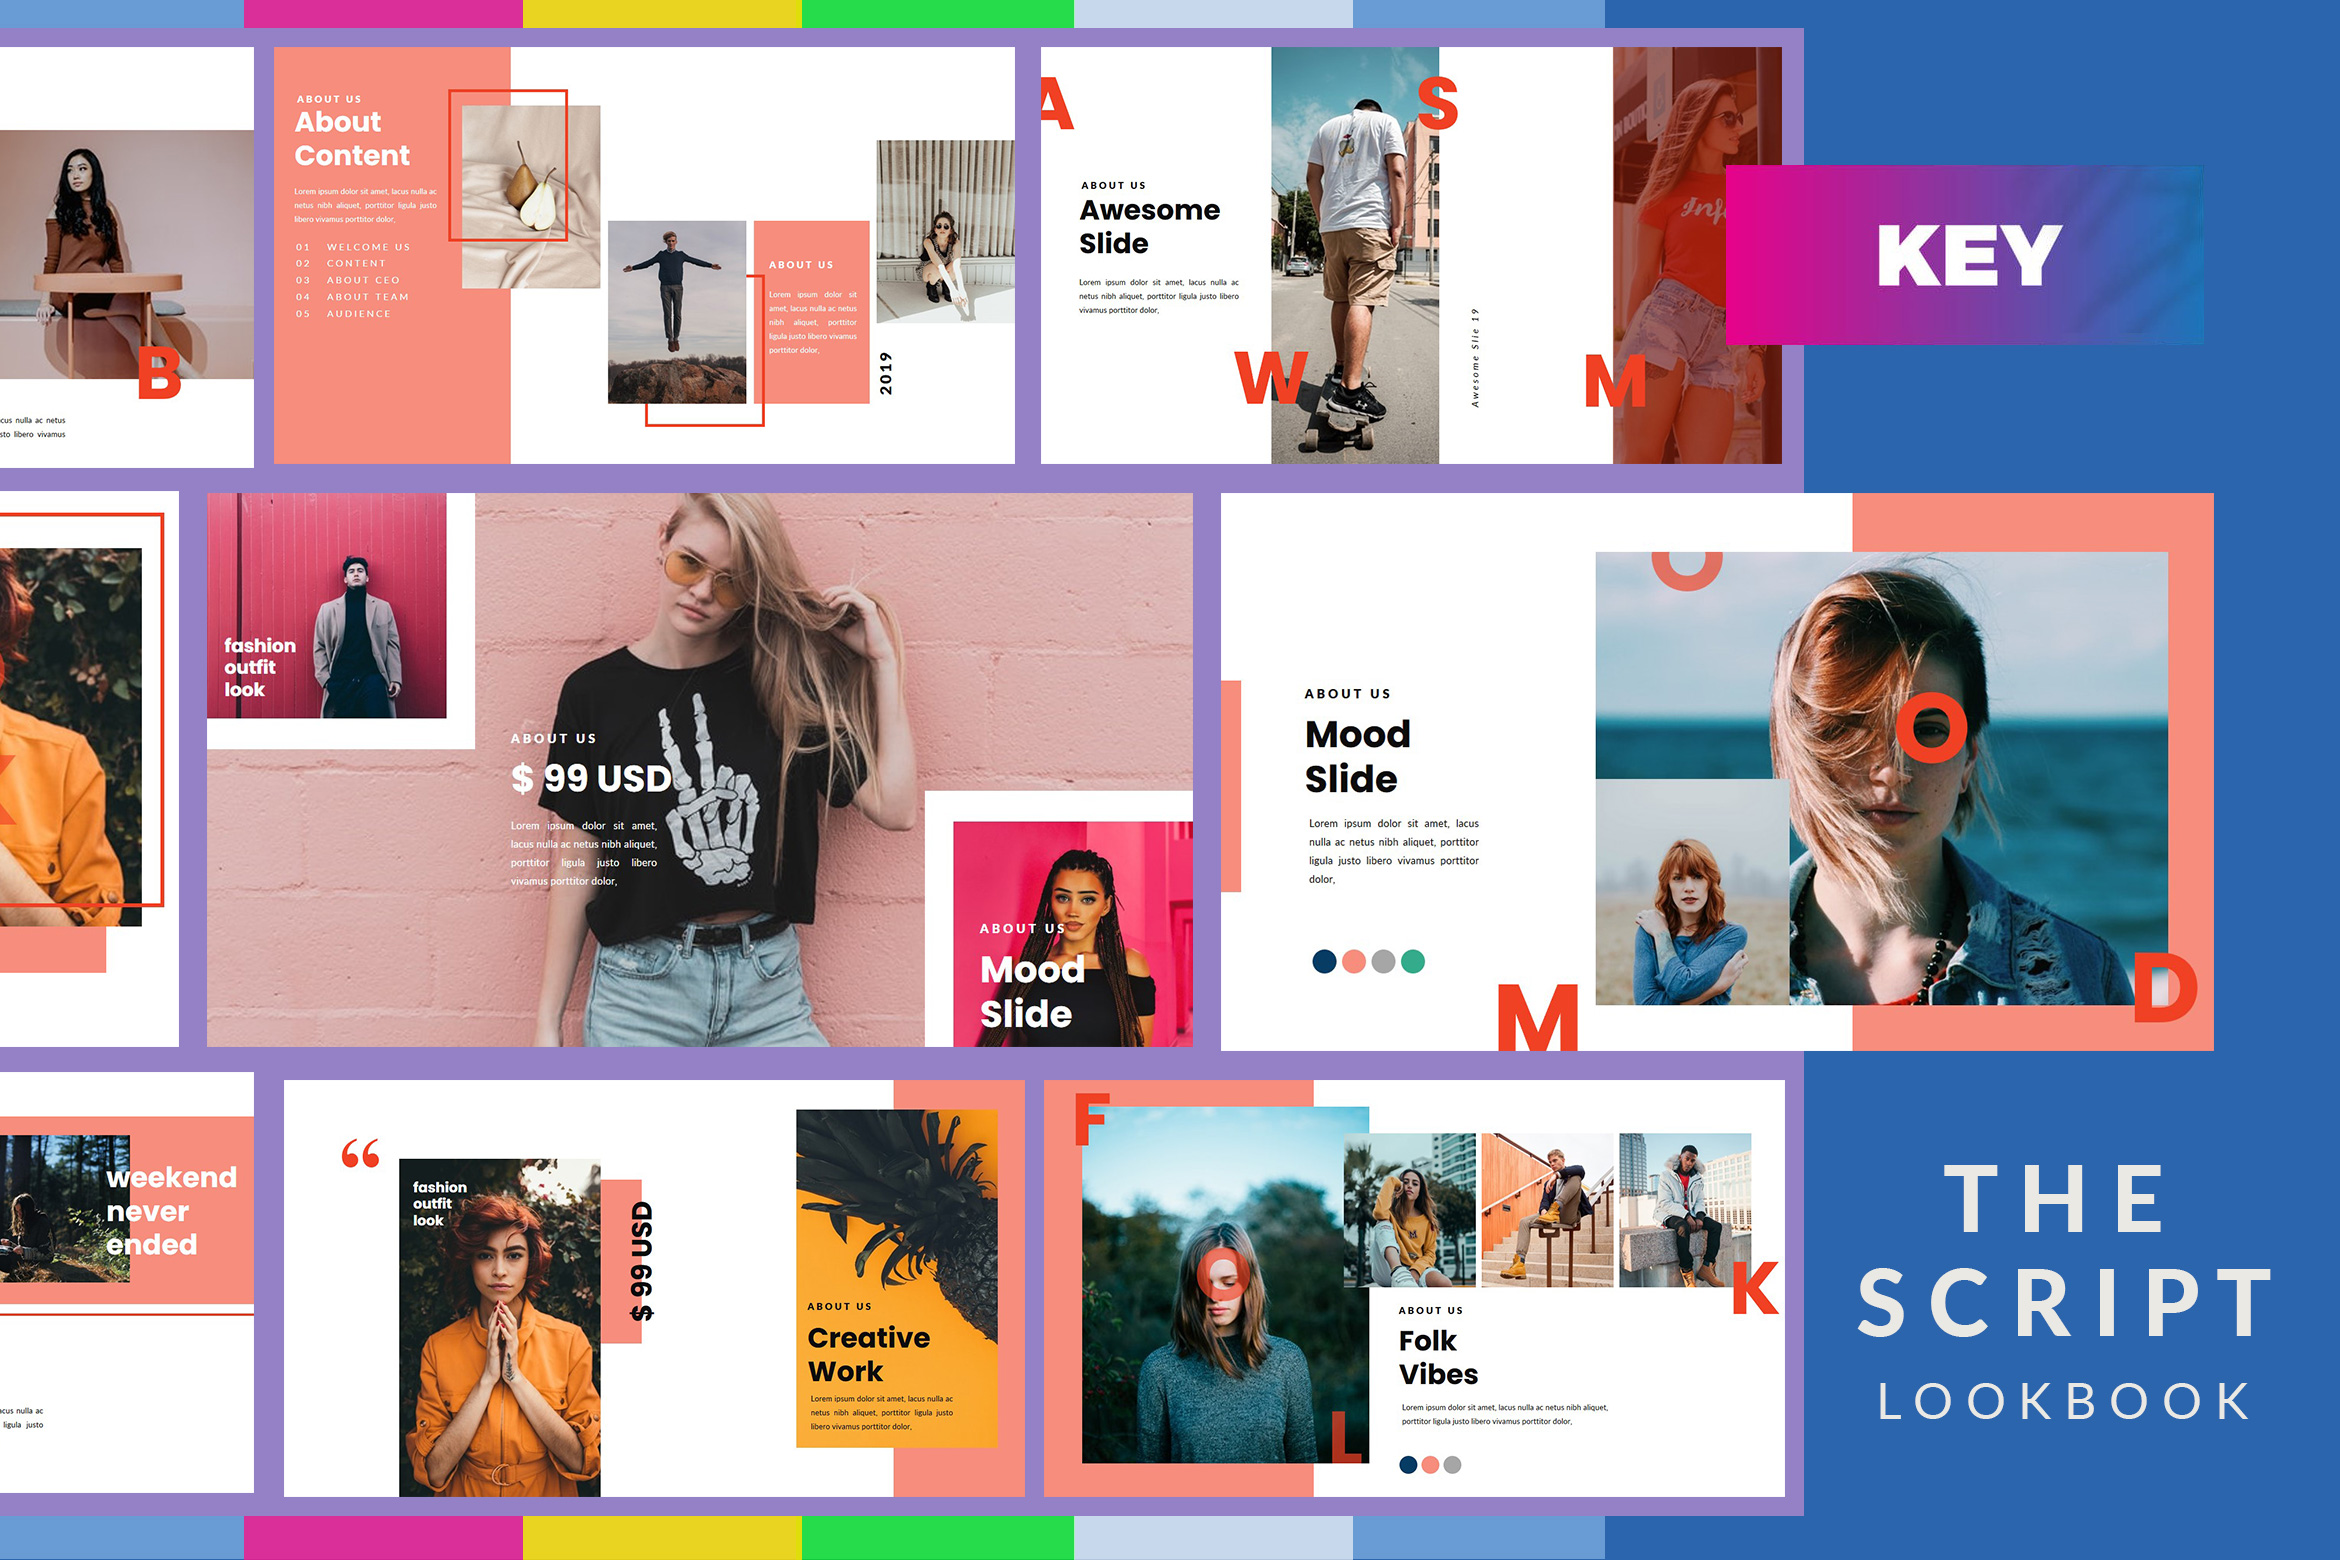 The Script Lookbook - Keynote Template example image 1